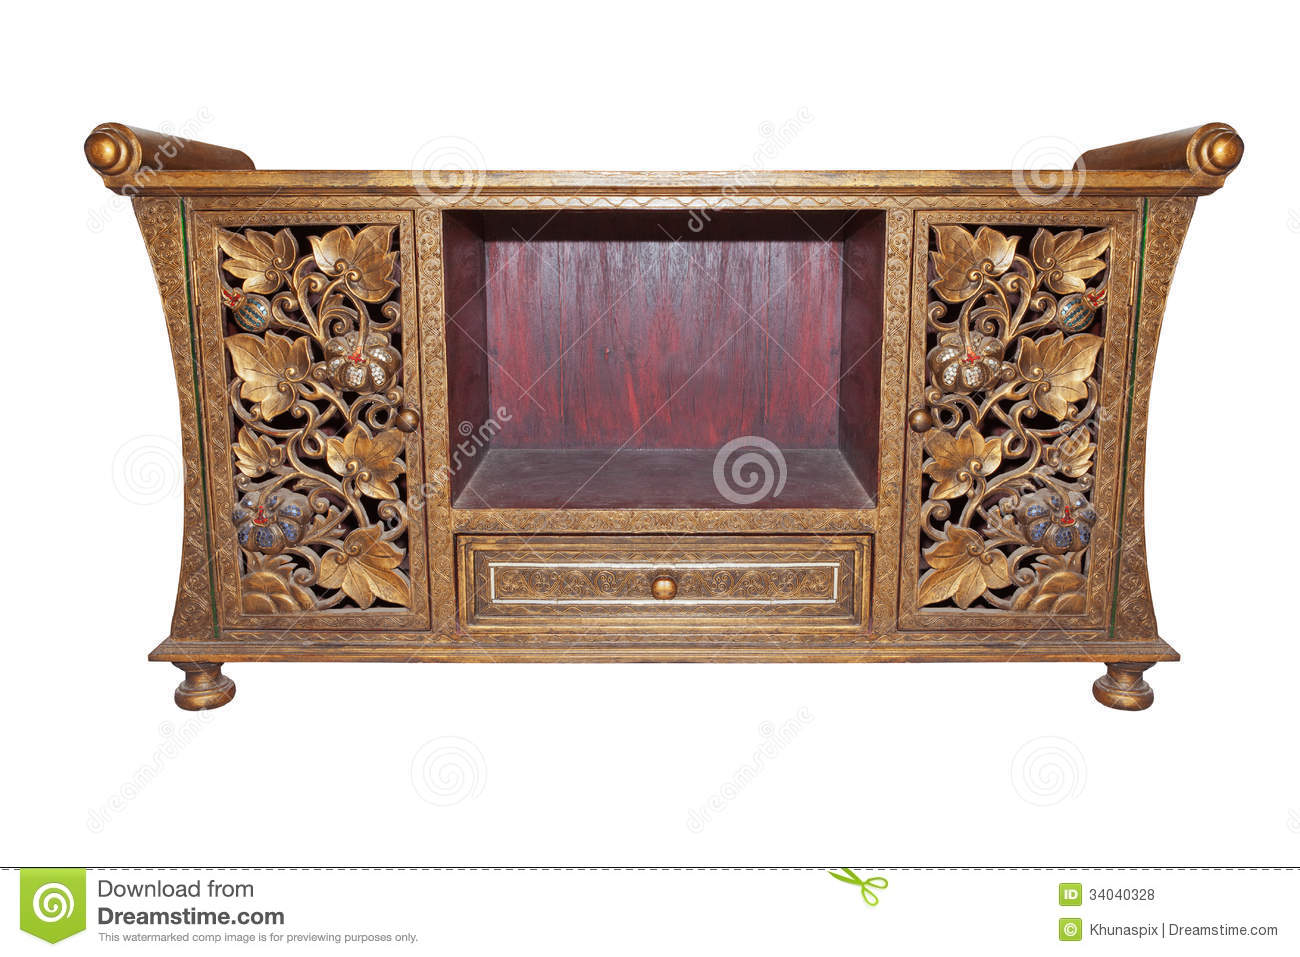 Old Thai Wood Furniture Desk Isolated White Royalty Free Stock Photos Image 34040328